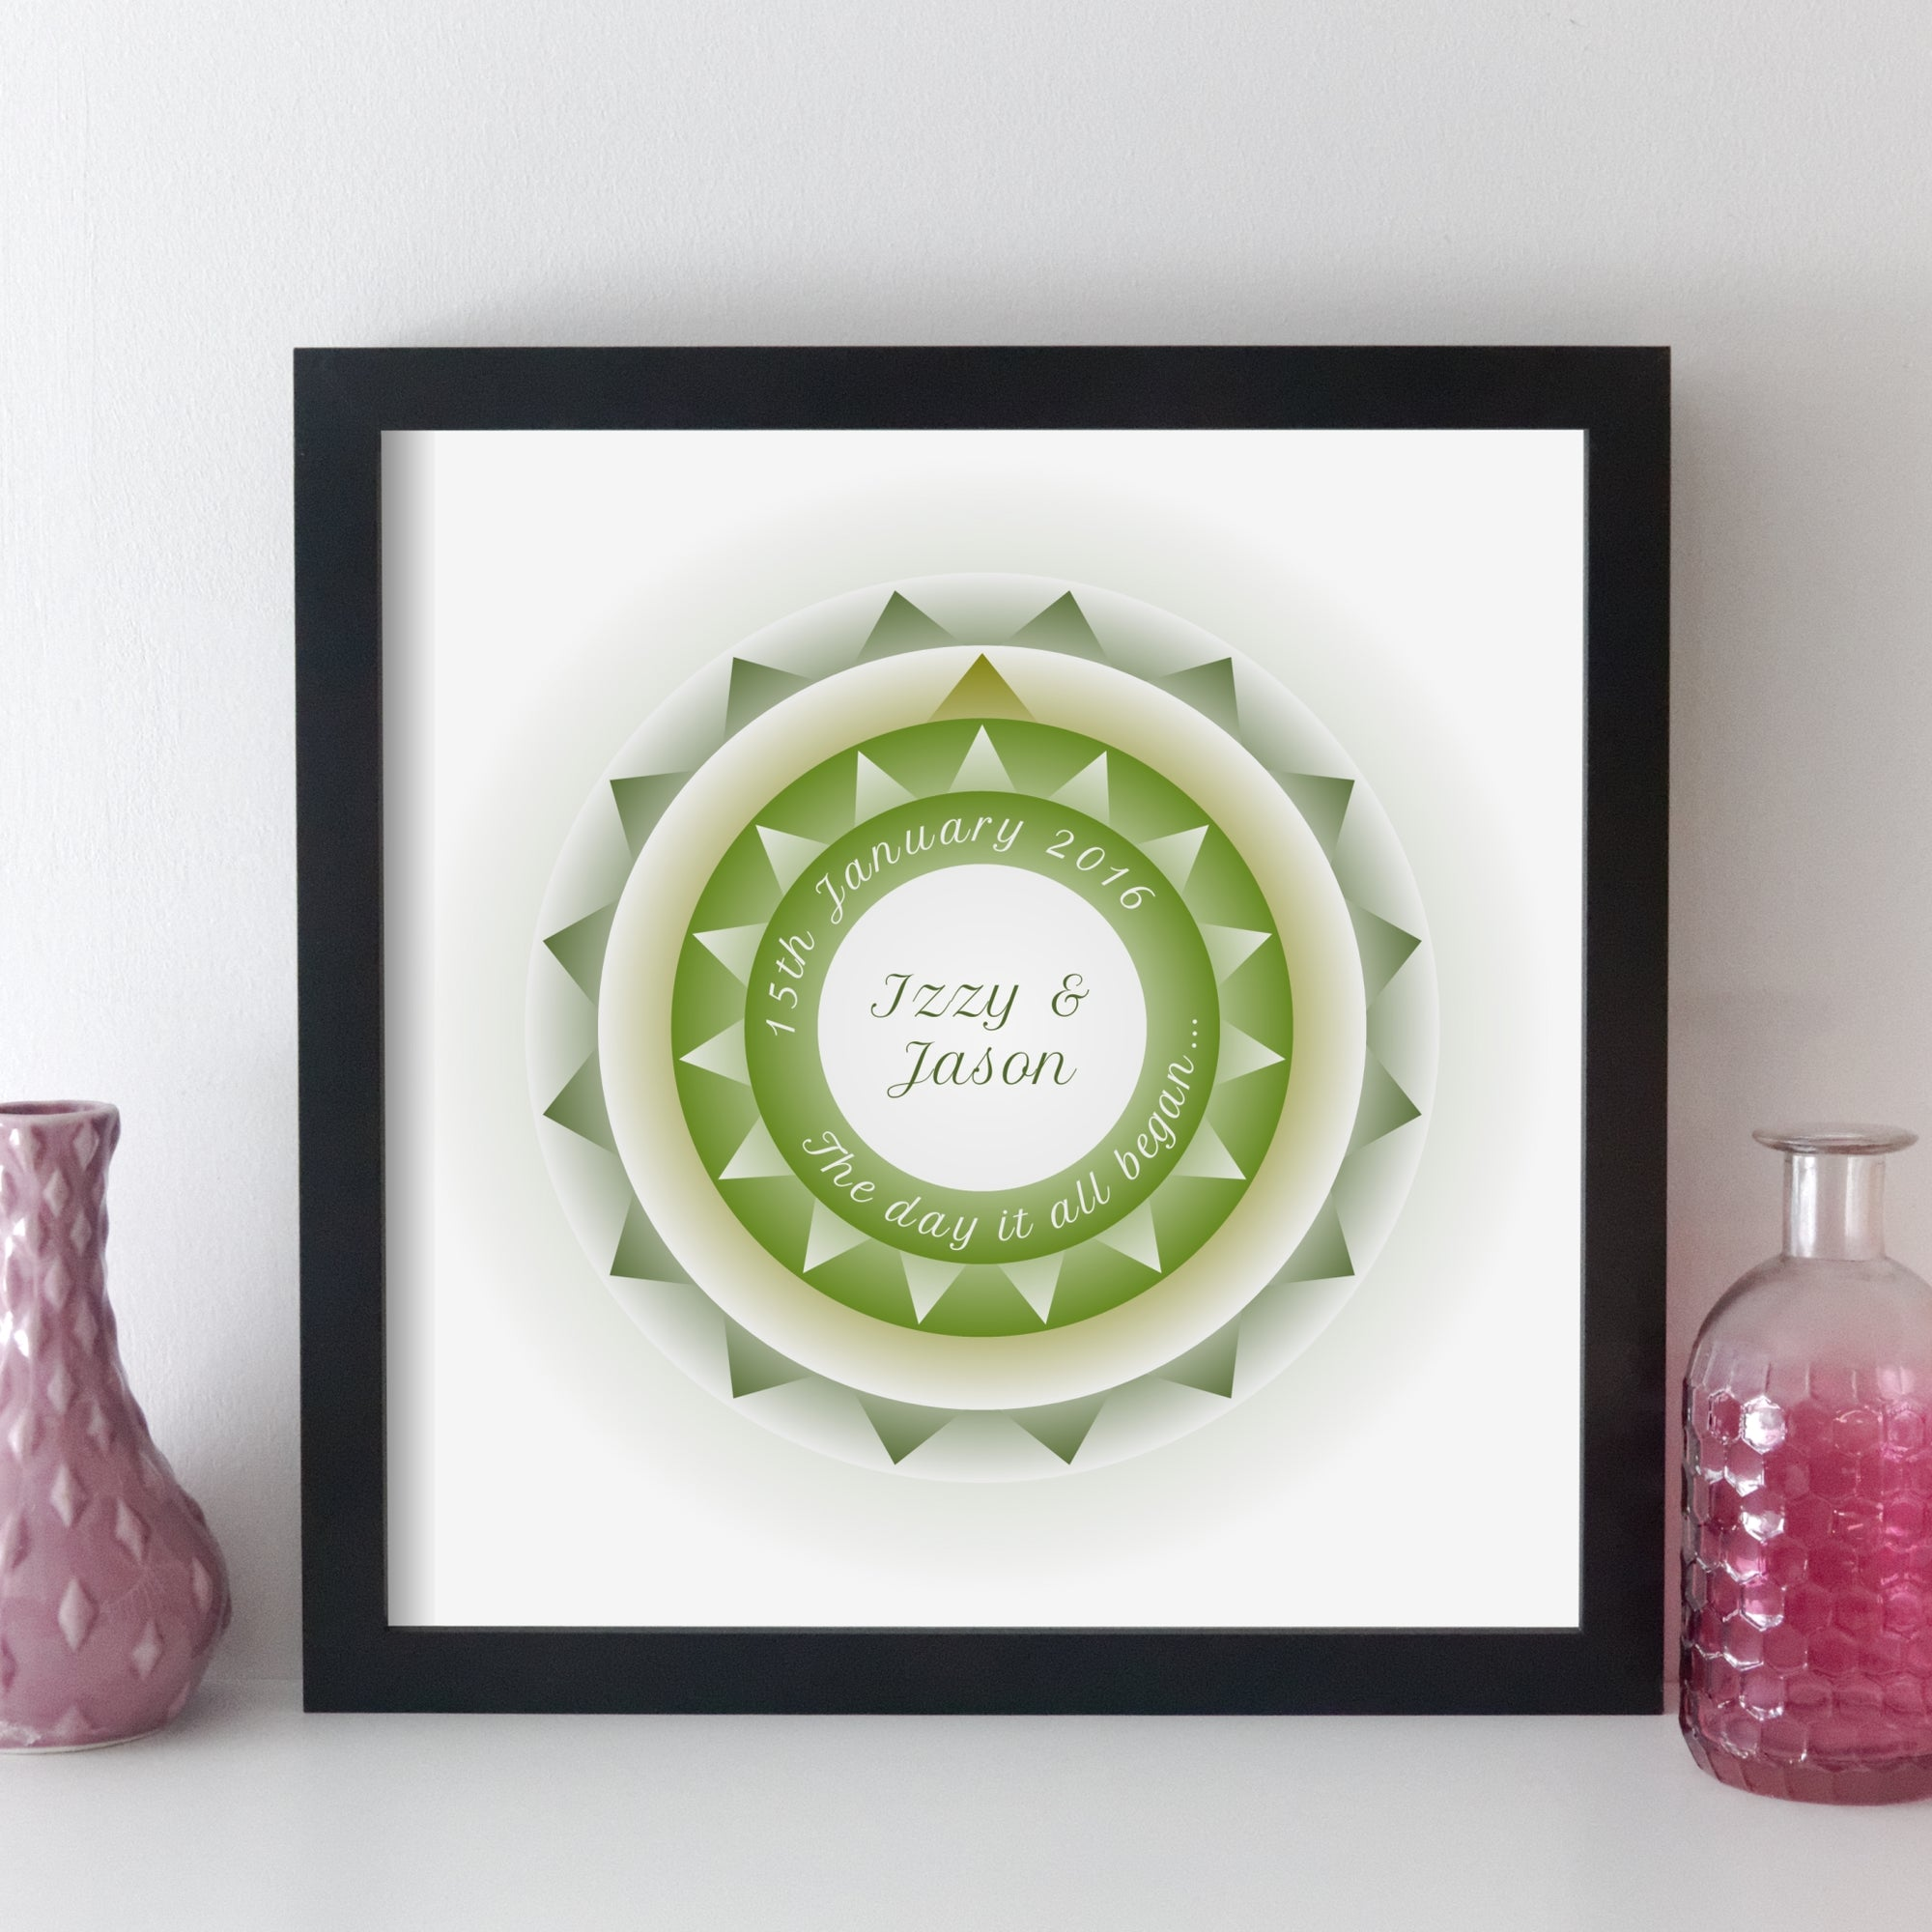 Personalised Special Date Wall Art - Geometric Art